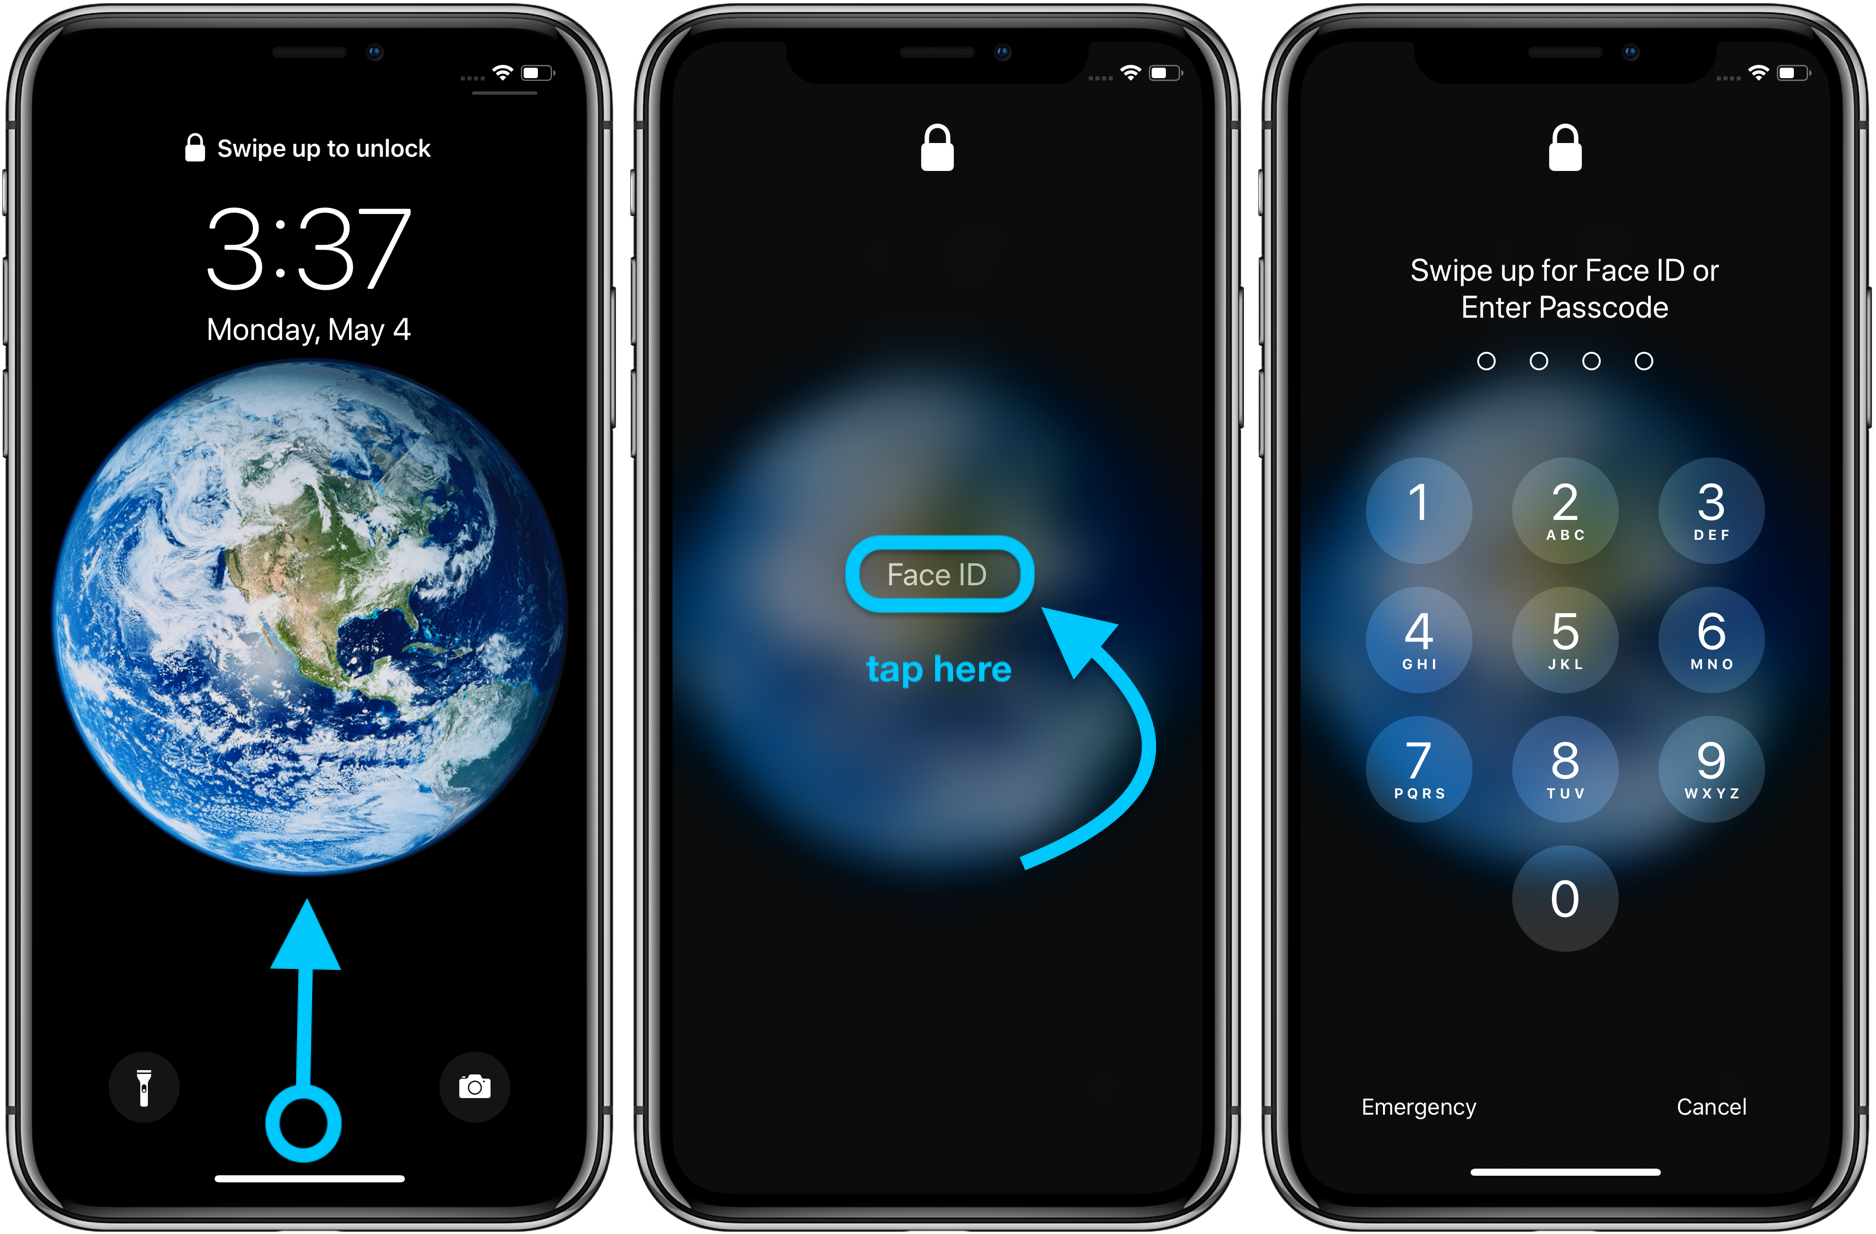 iPhone how to change passcode, skip Face ID walkthrough